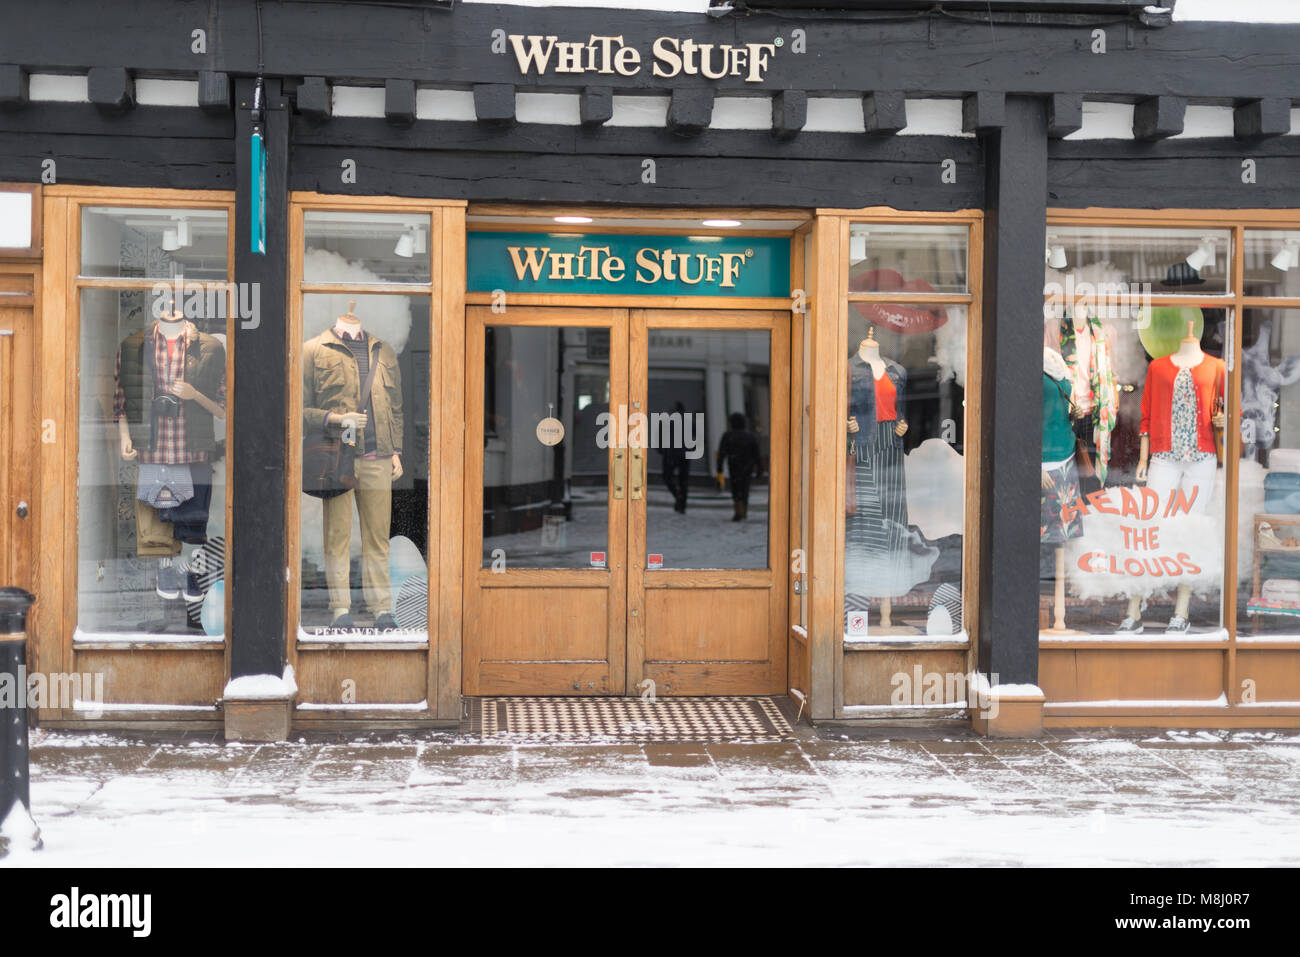 39f820b4edd4 Stratford upon Avon England March 18th 2018 white stuff shop with snow in  front after beast from the east Credit  paul rushton Alamy Live News